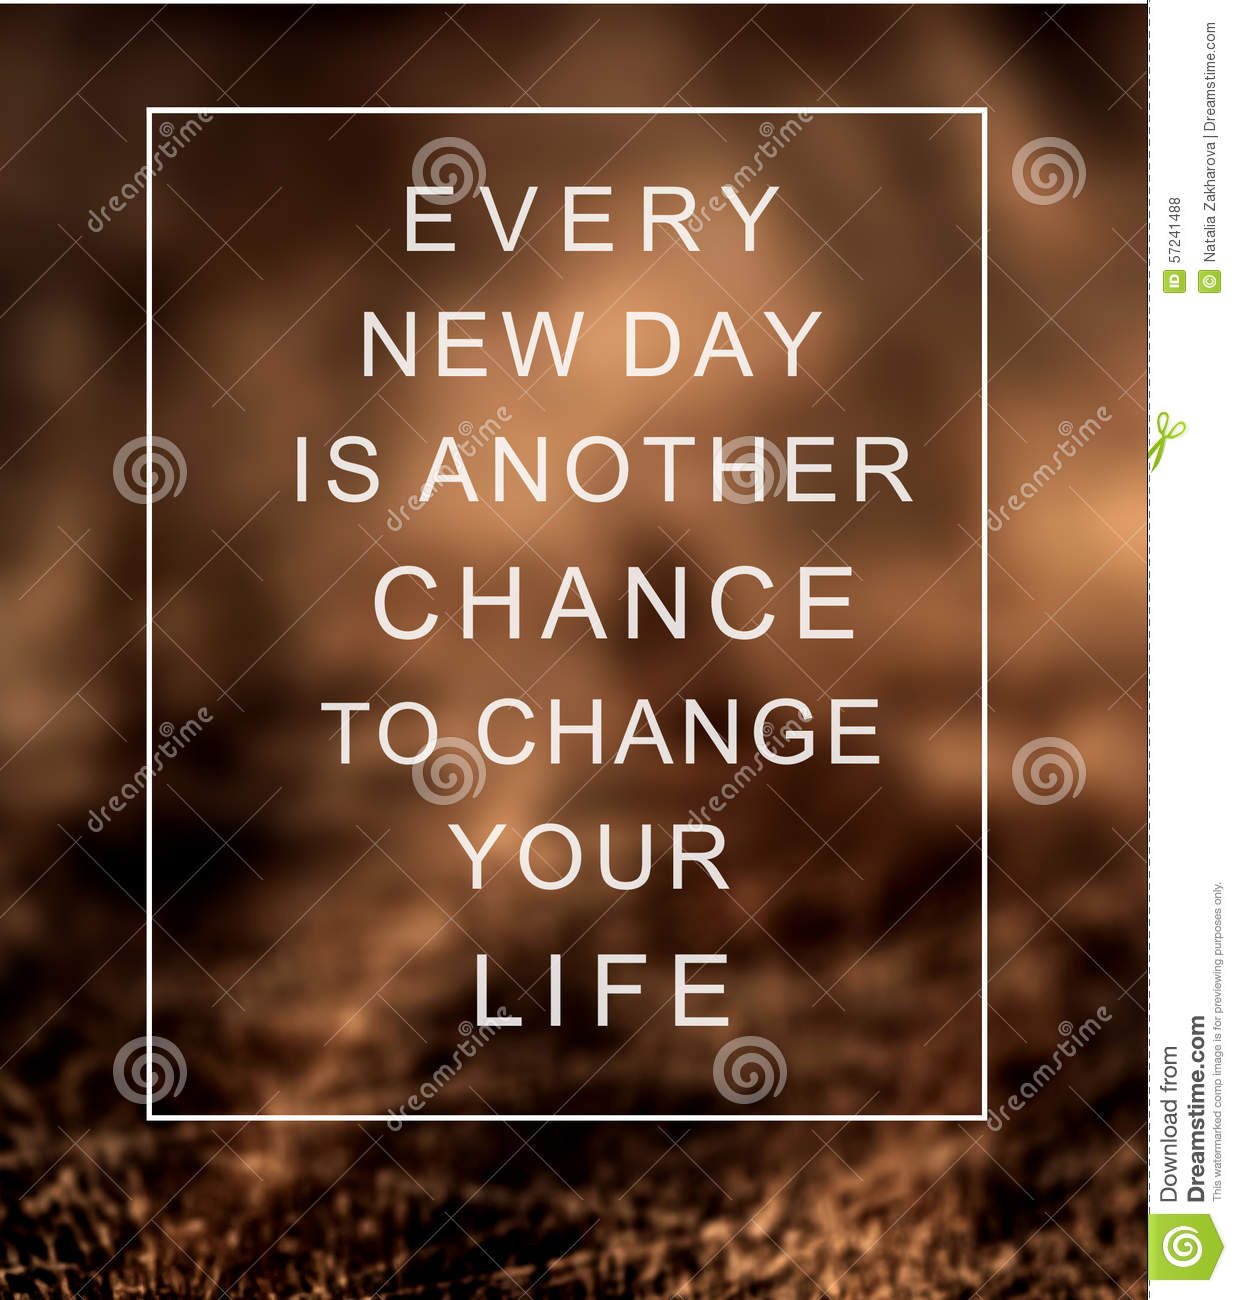 change your life in 7 days pdf download